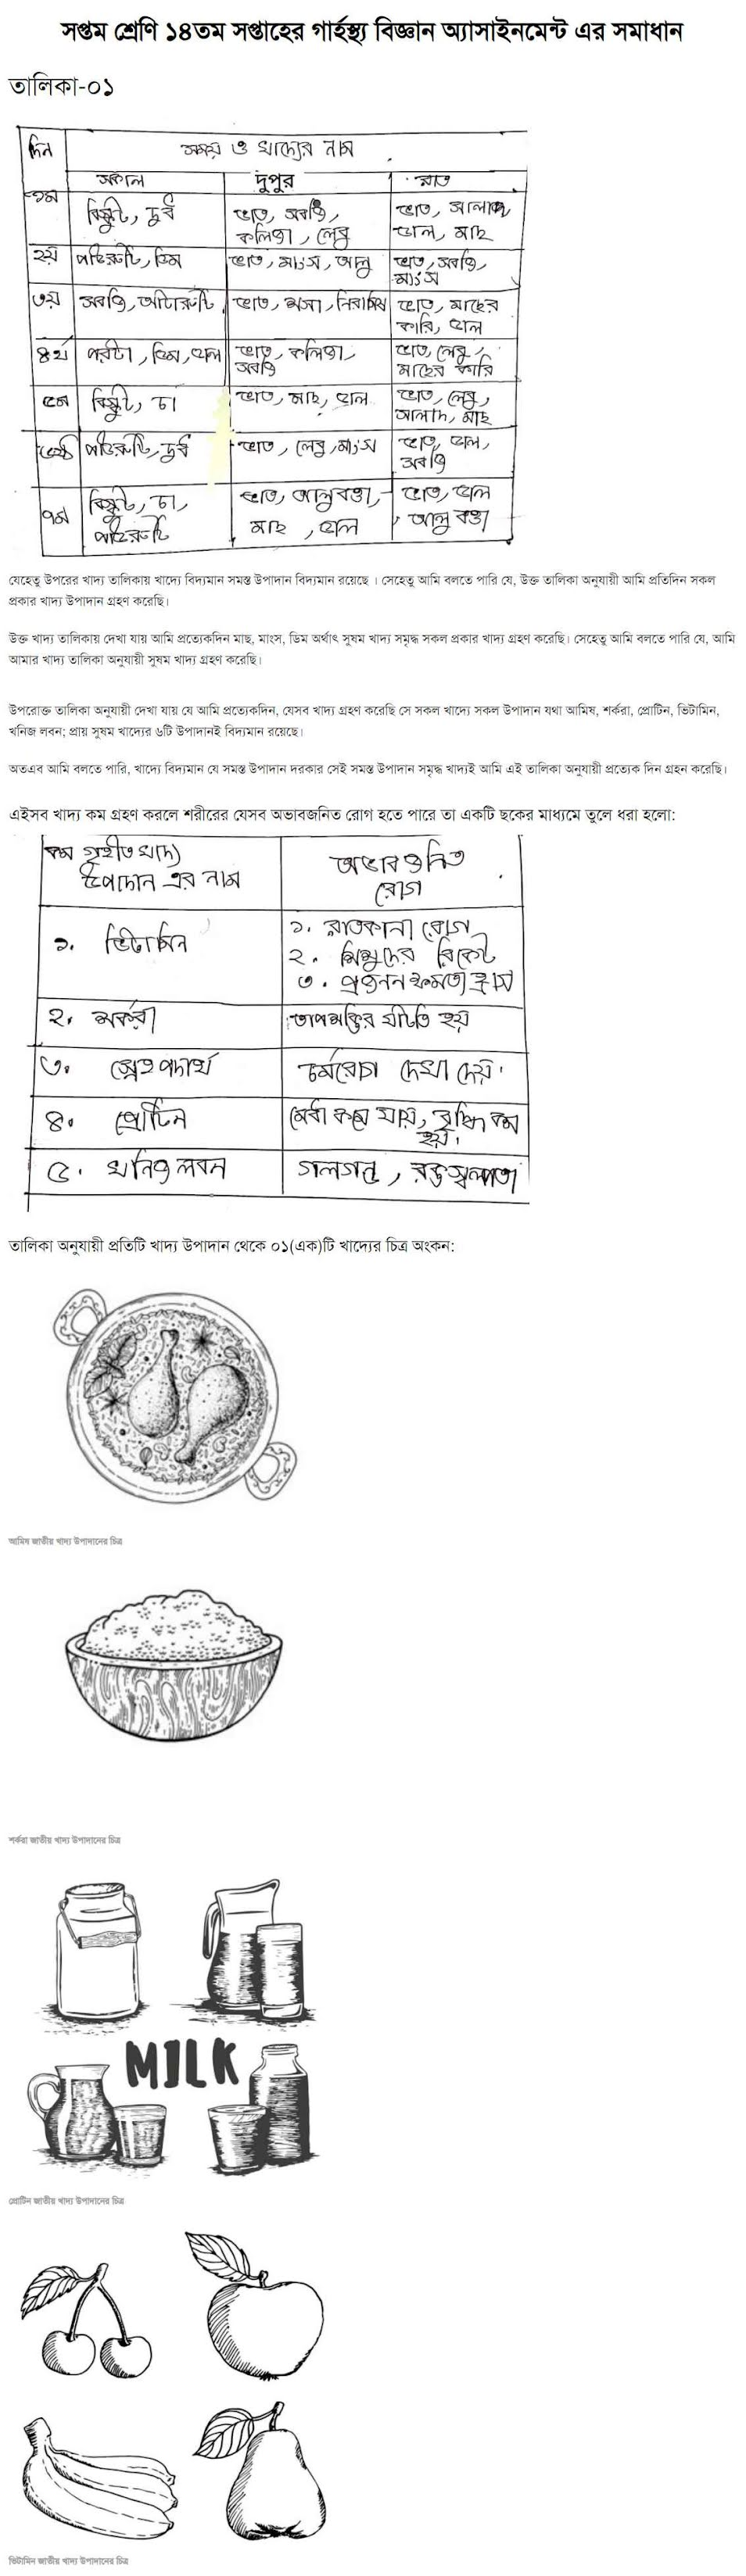 Class 7 14th Week Home Economics Assignment Answer 2021